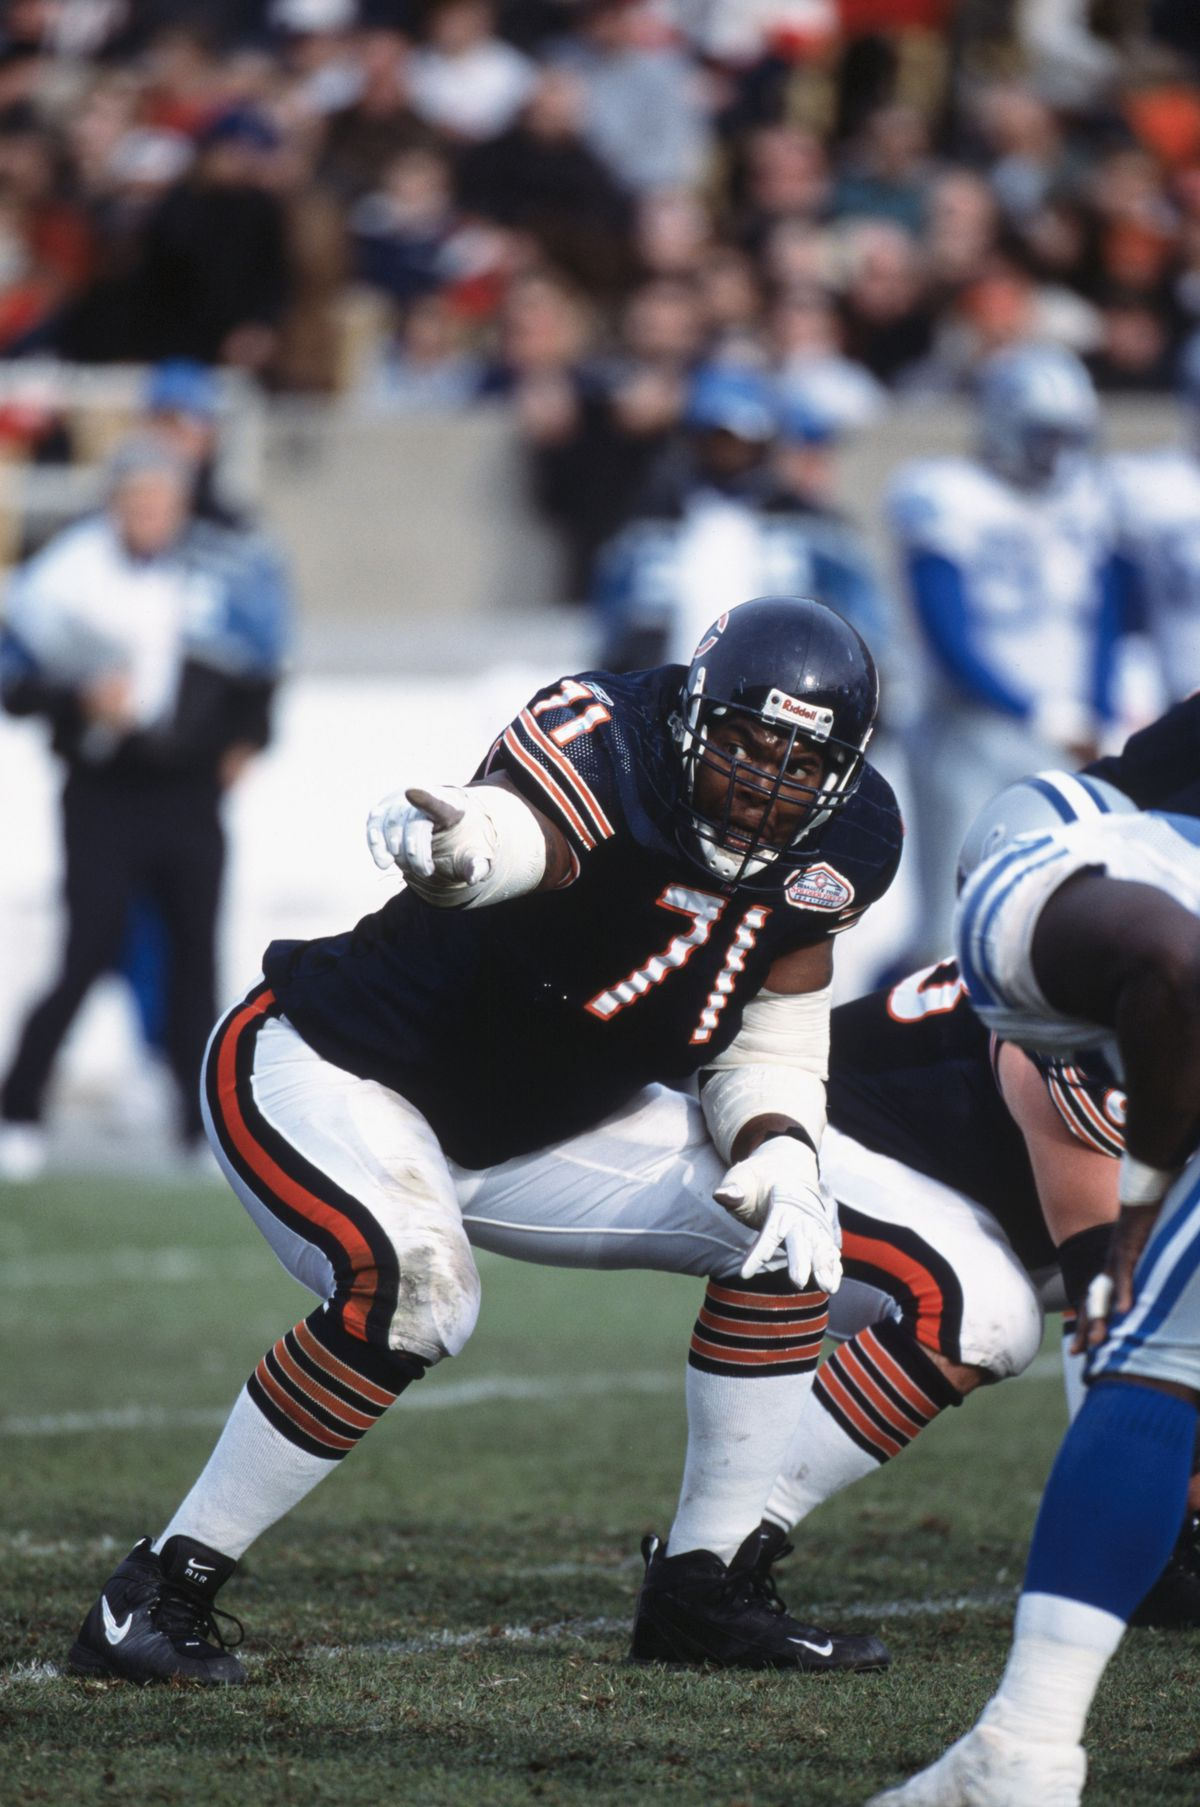 James Williams #71 of the Chicago Bears points